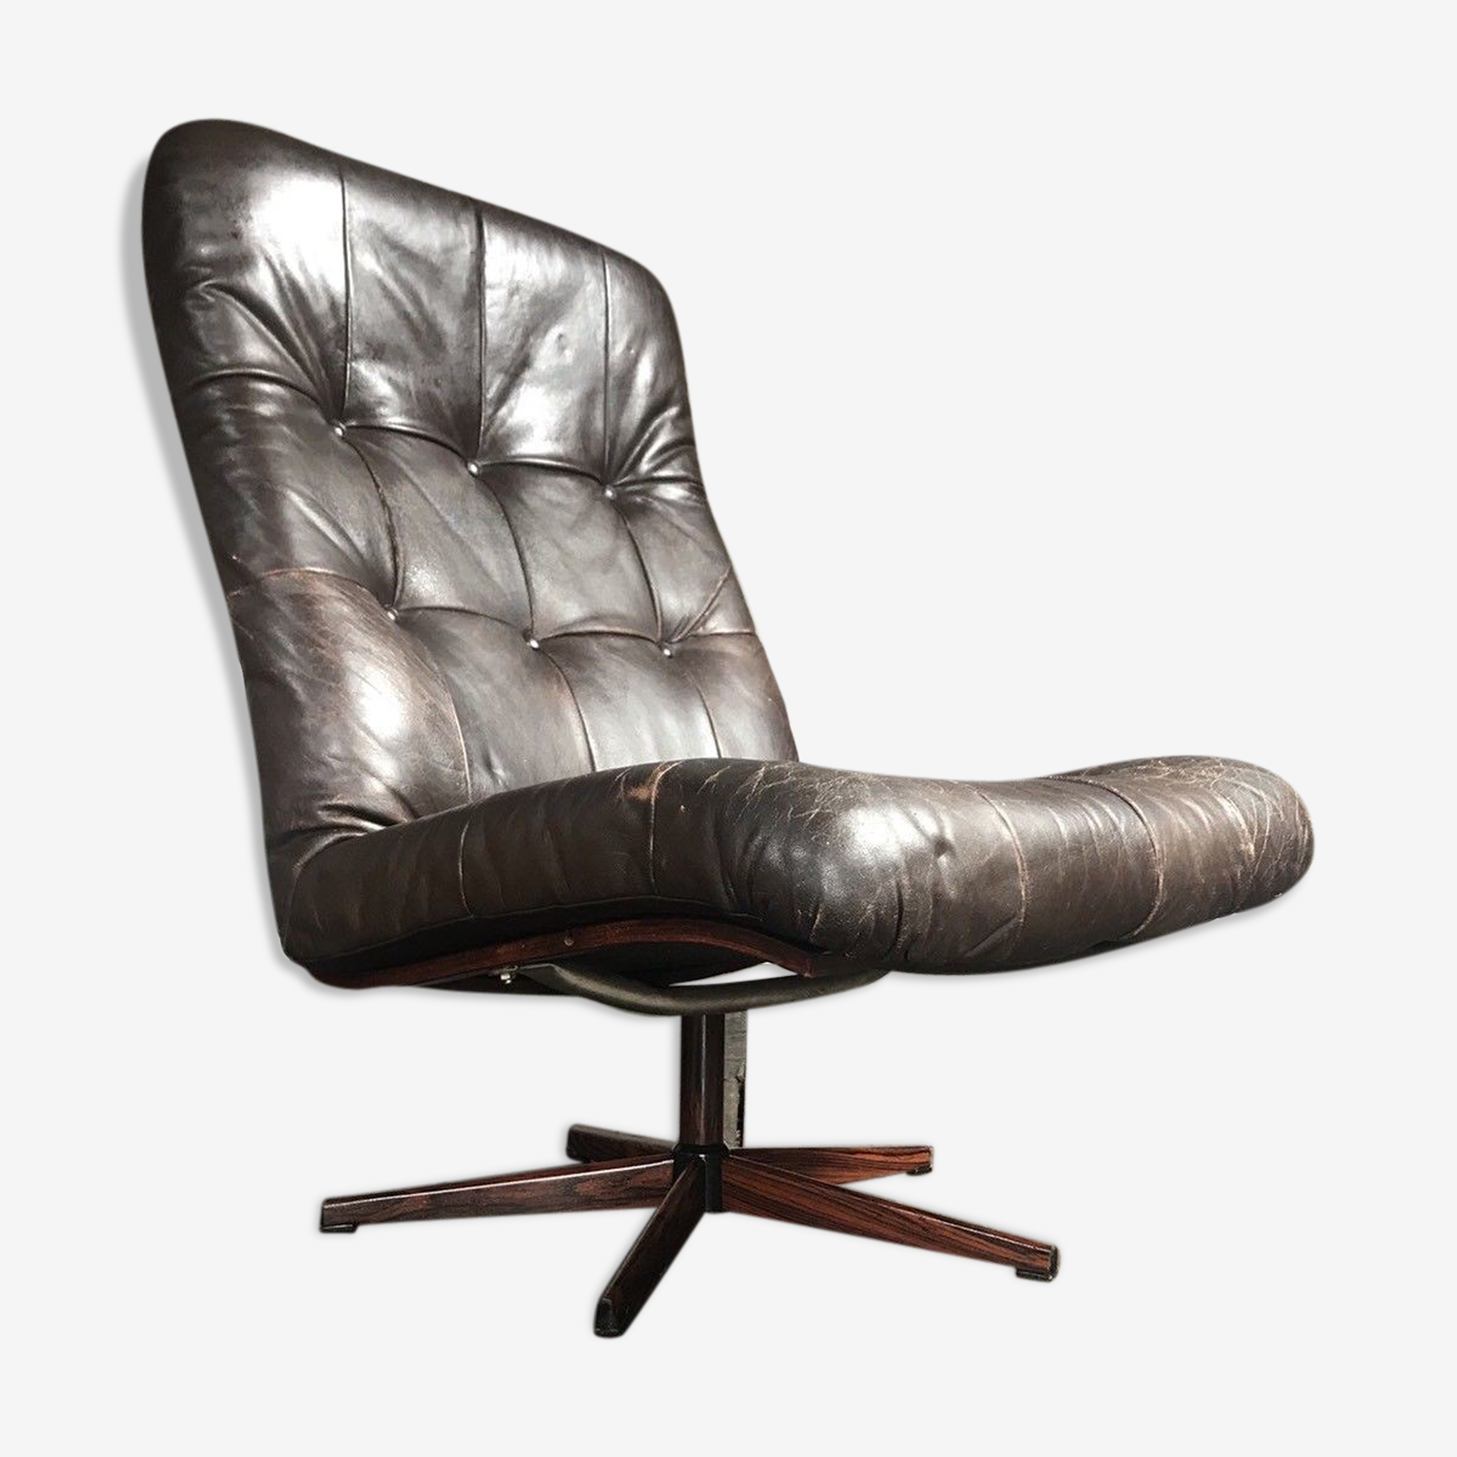 The mid century leather chair